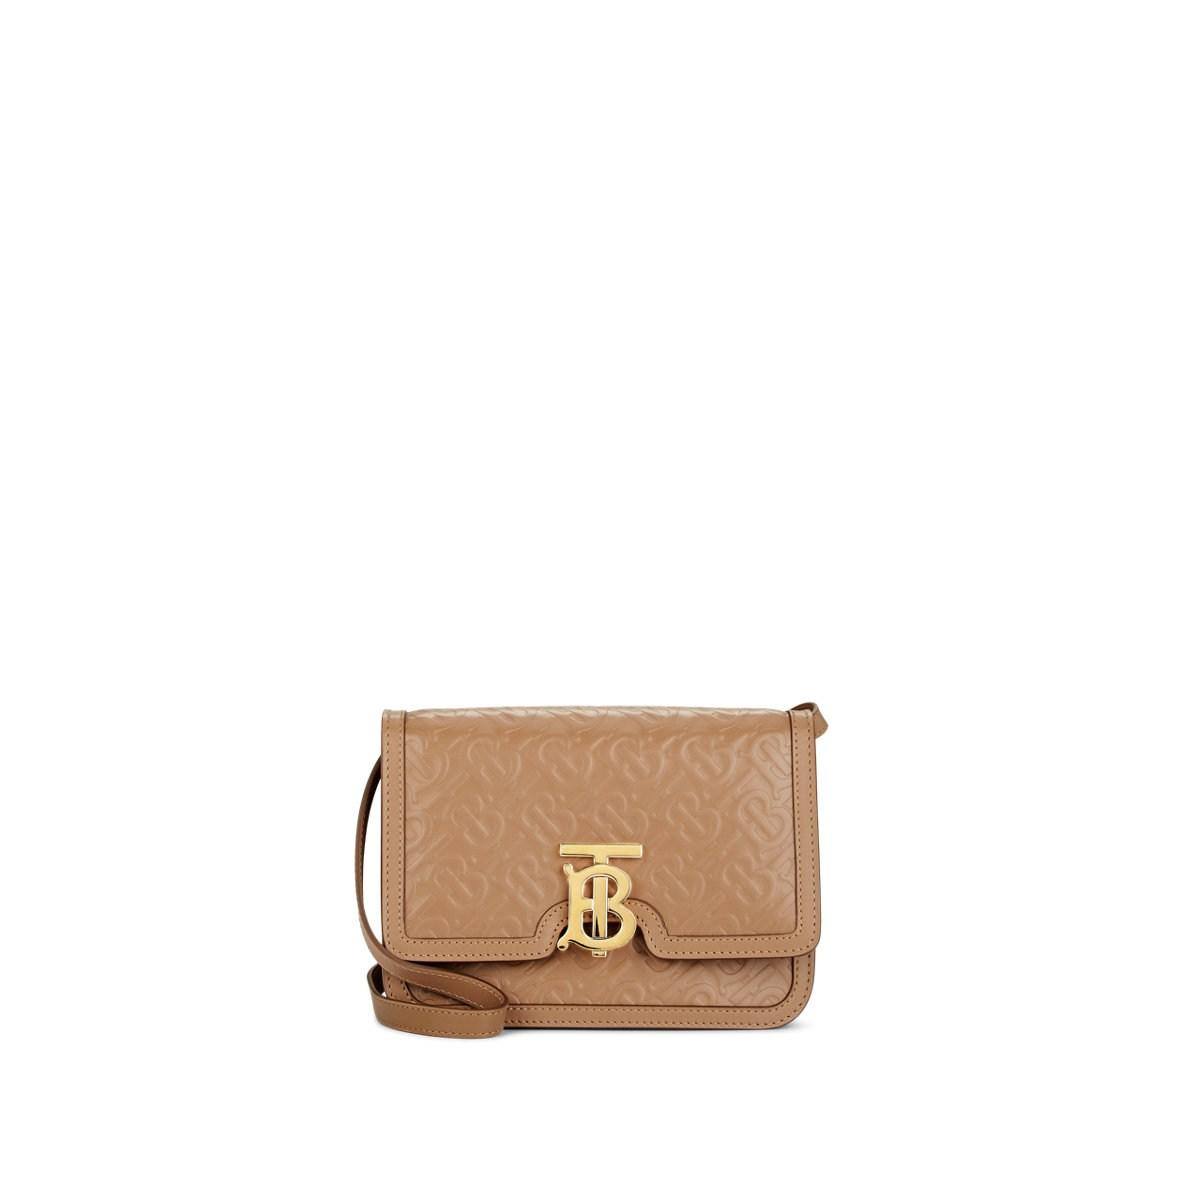 187fd3007fa7 Burberry. Women s Tb Small Leather Shoulder Bag